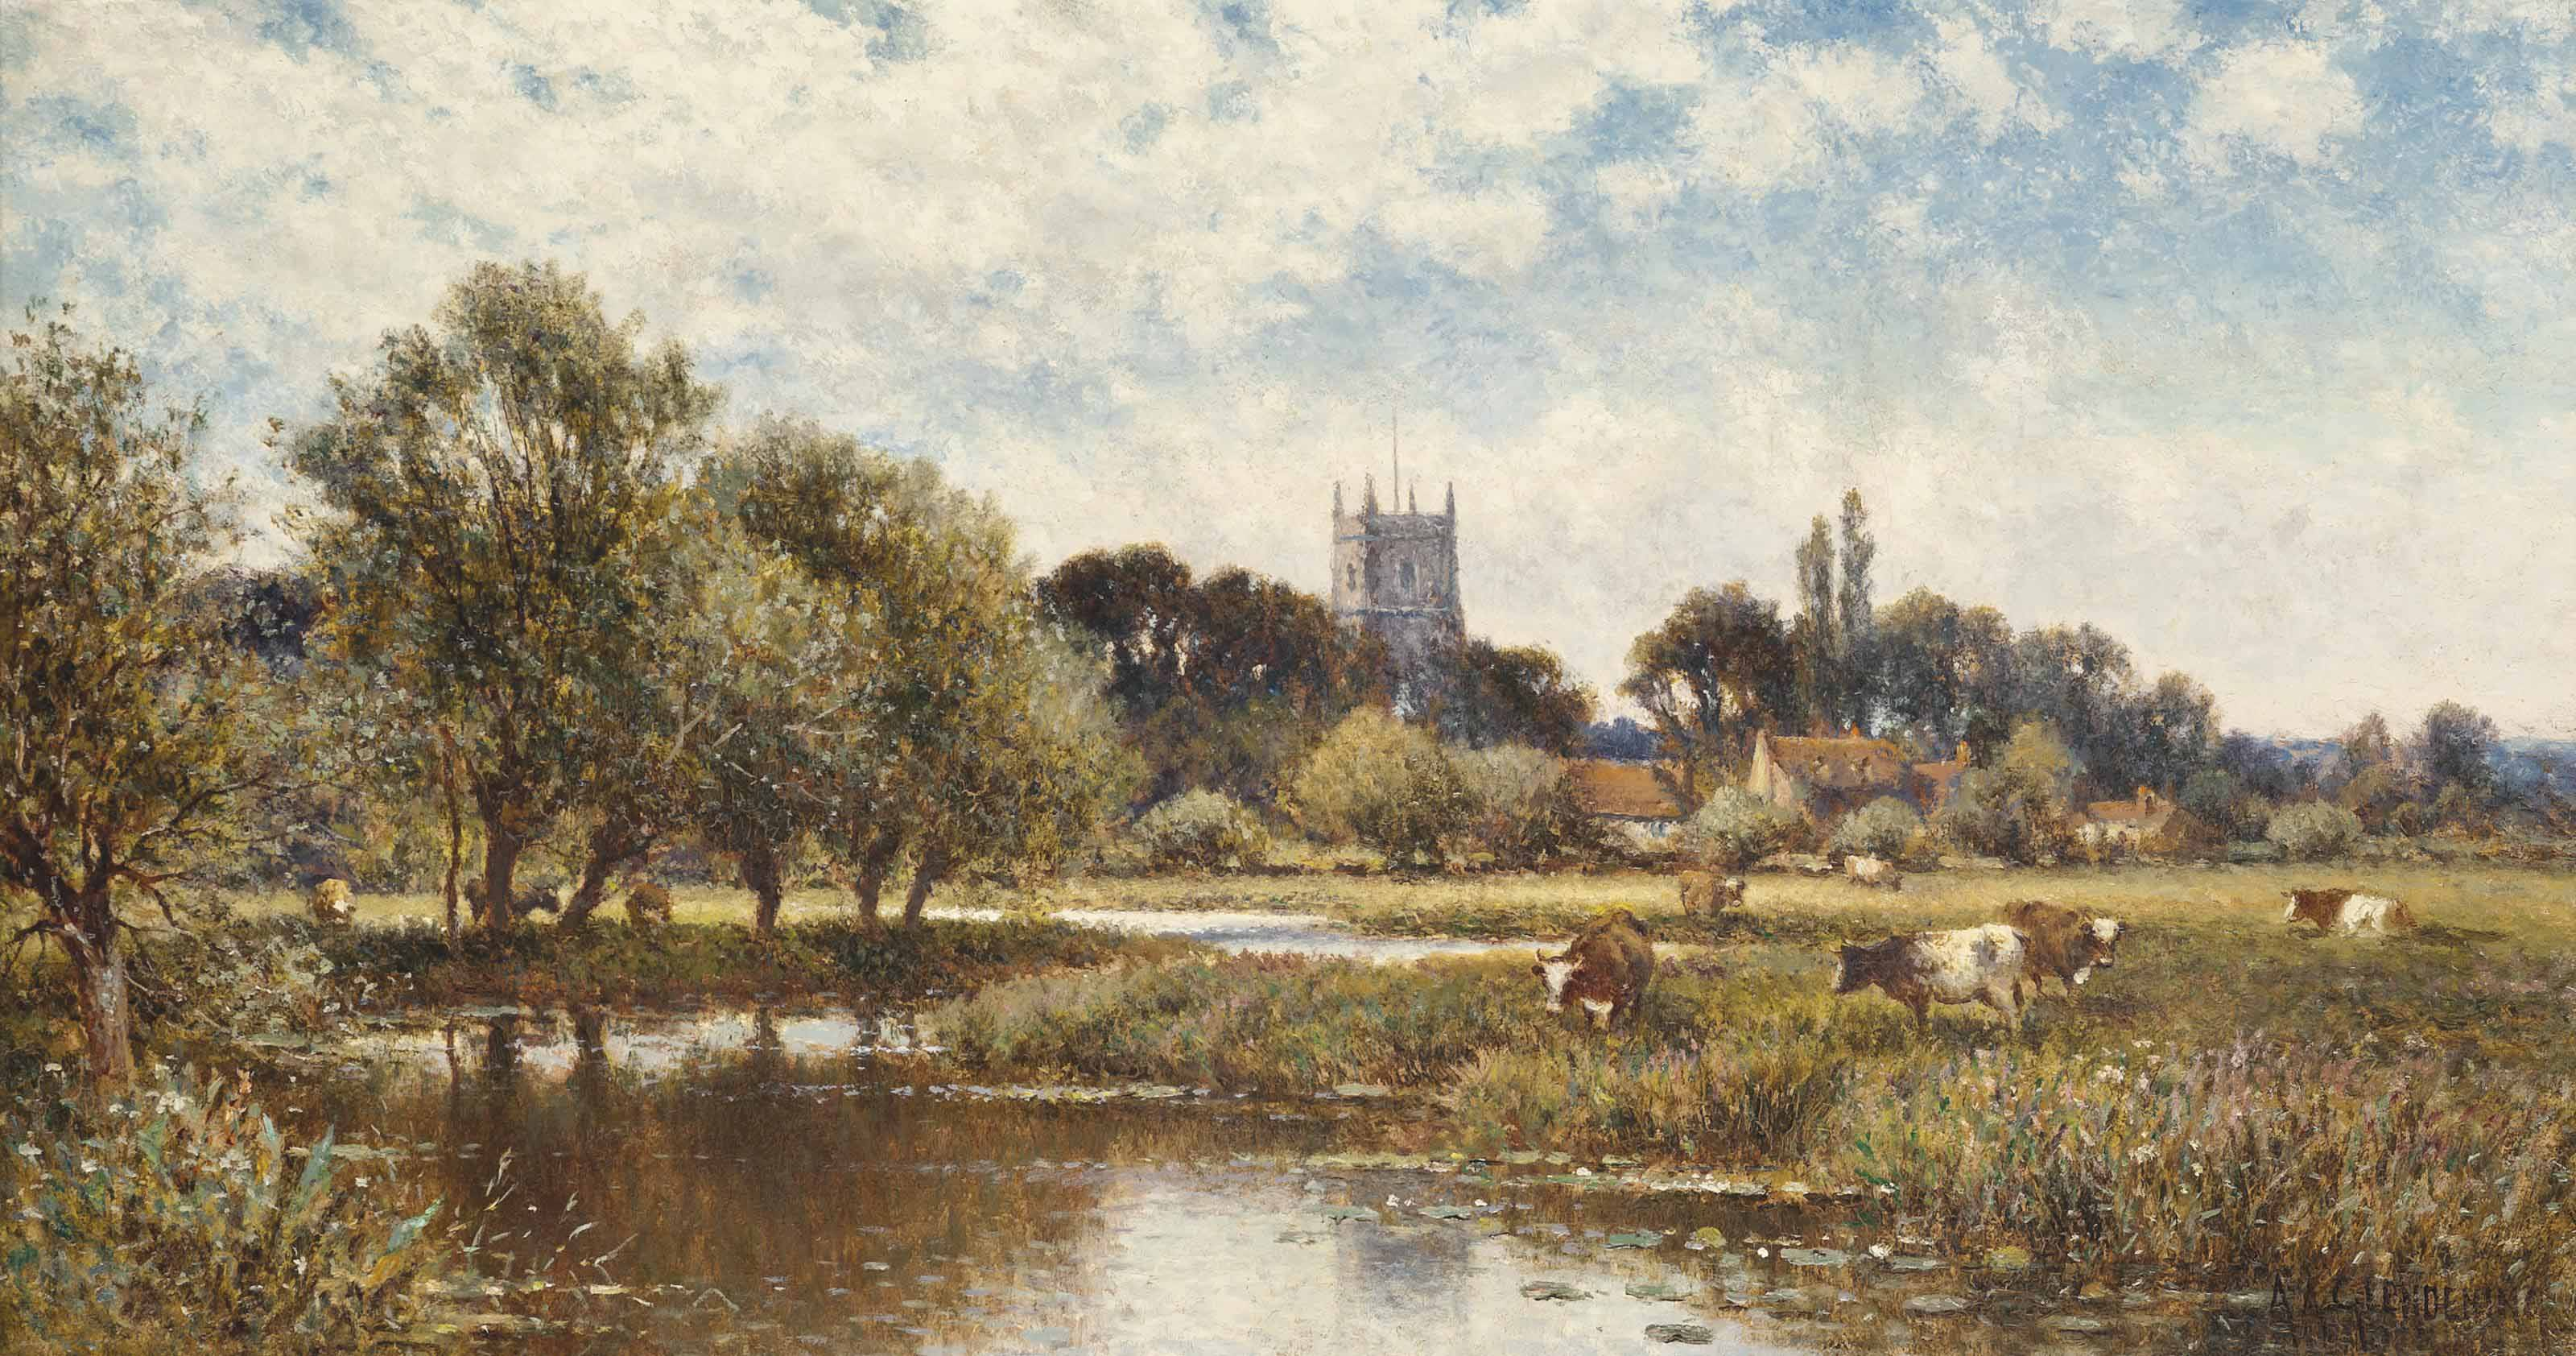 Cattle watering, Kempstead-on-Thames